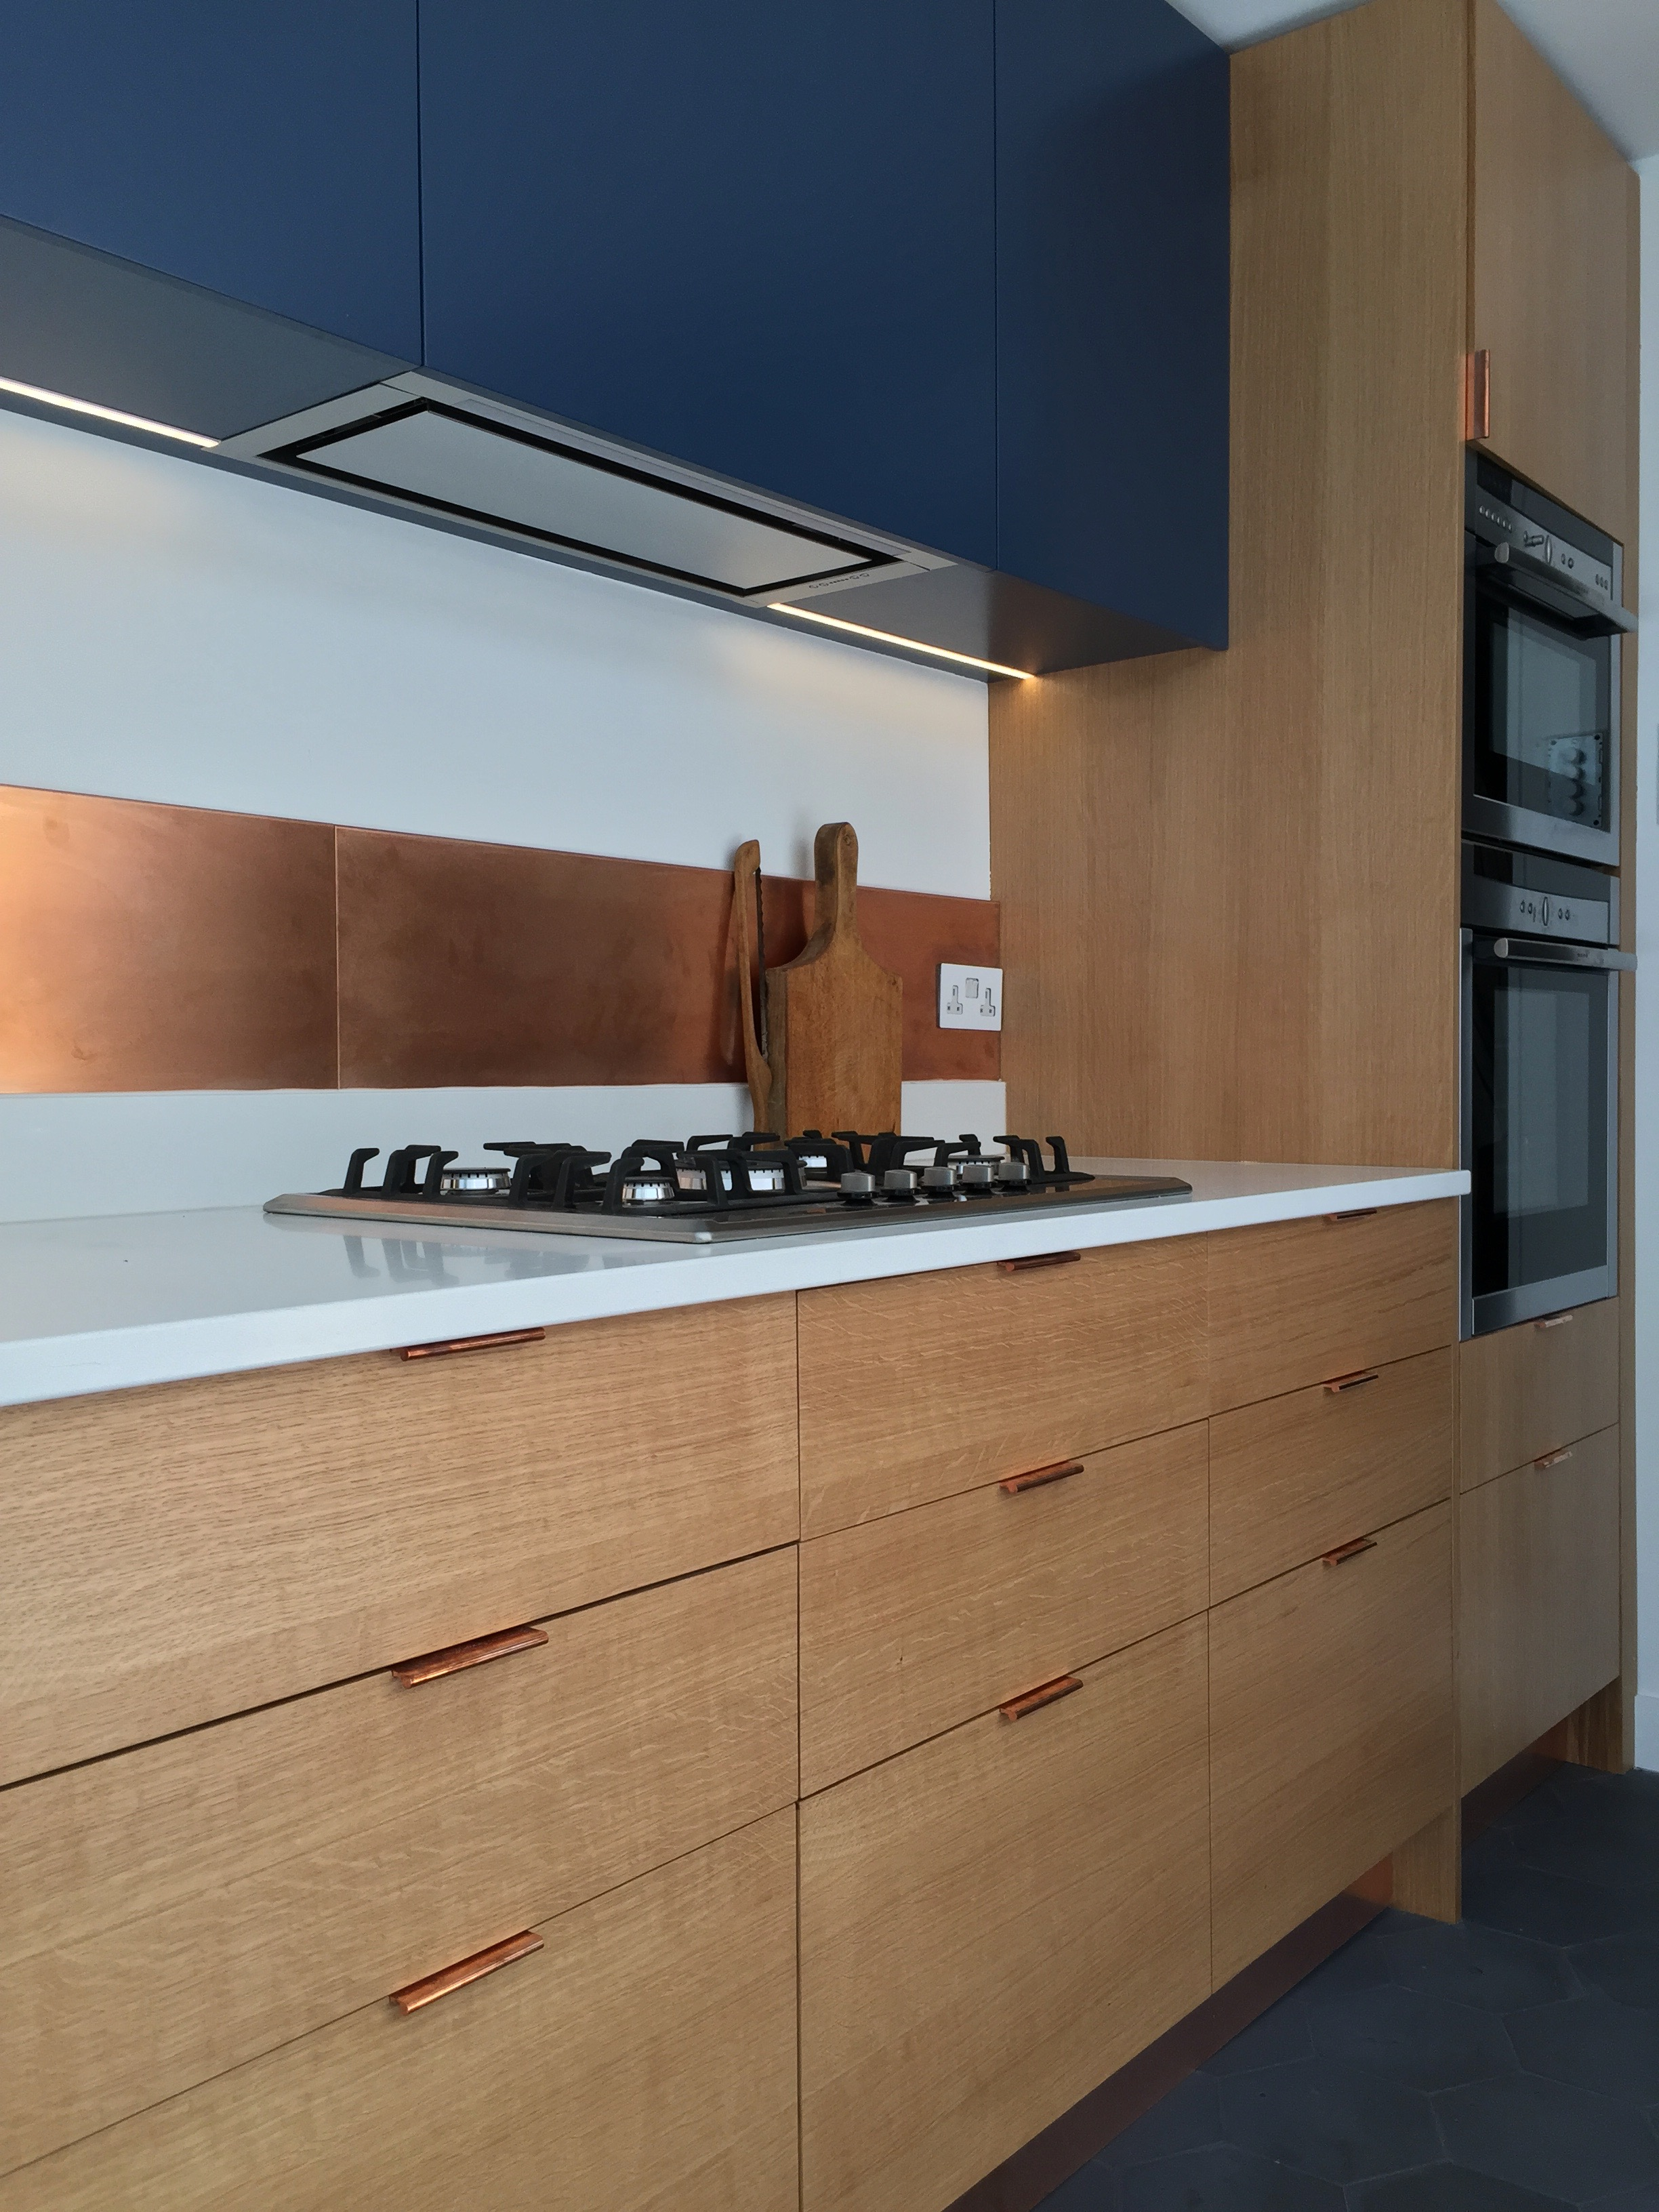 Cooper splashback with Blue cabinets and Spray Lacquered birch ply